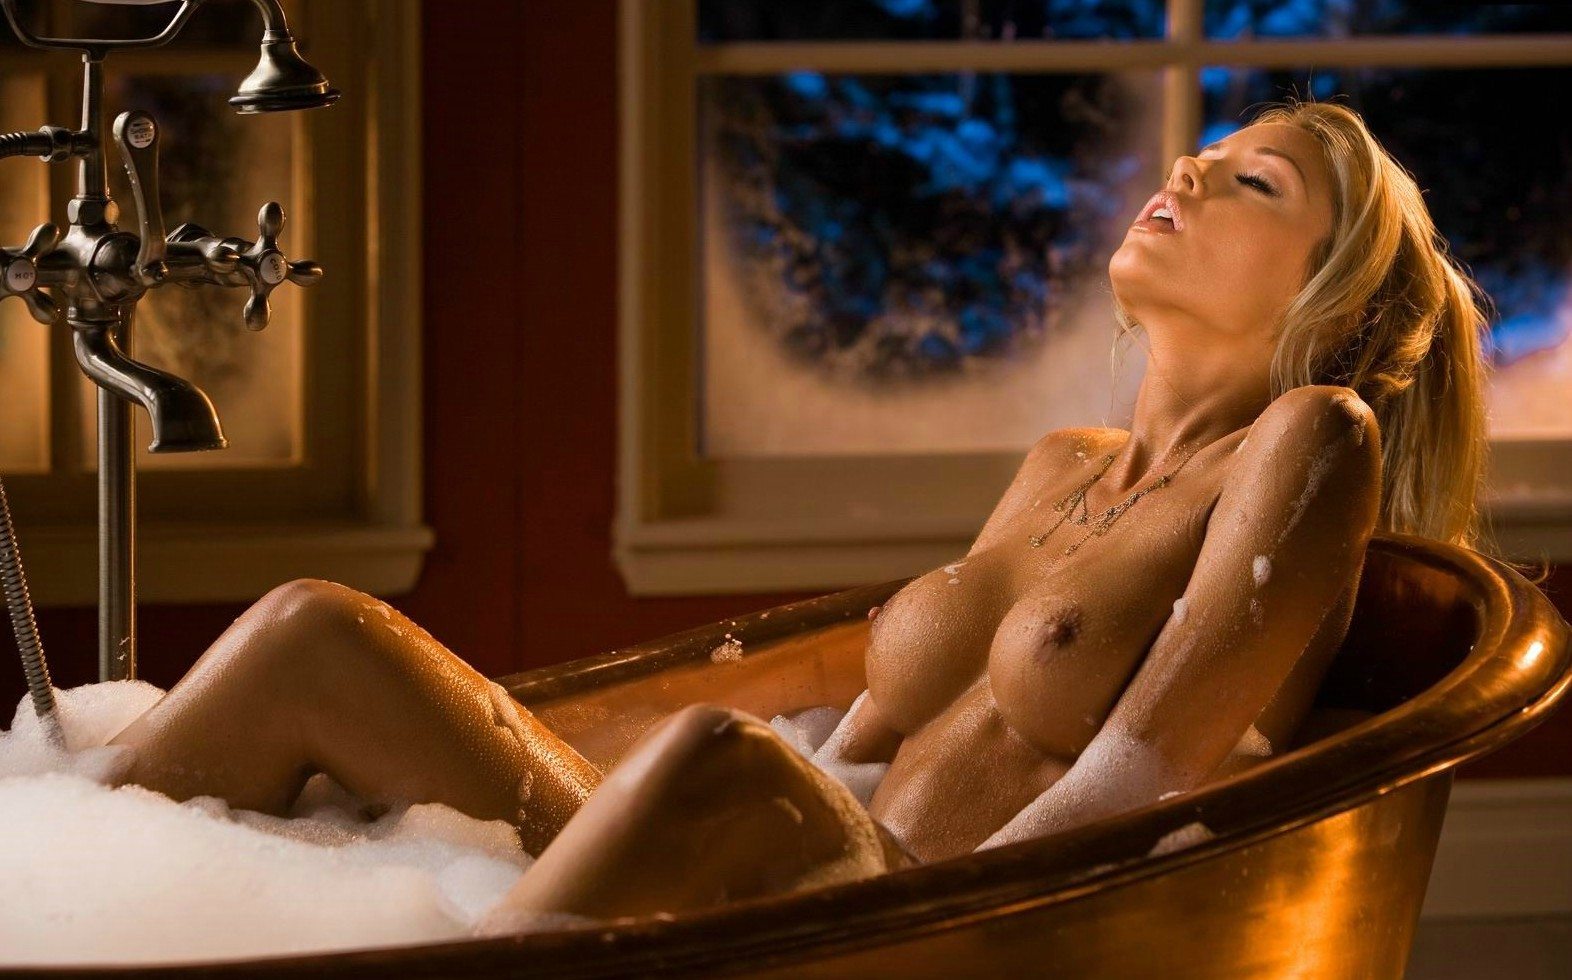 Wild Naked Lesbos In A Jacuzzi